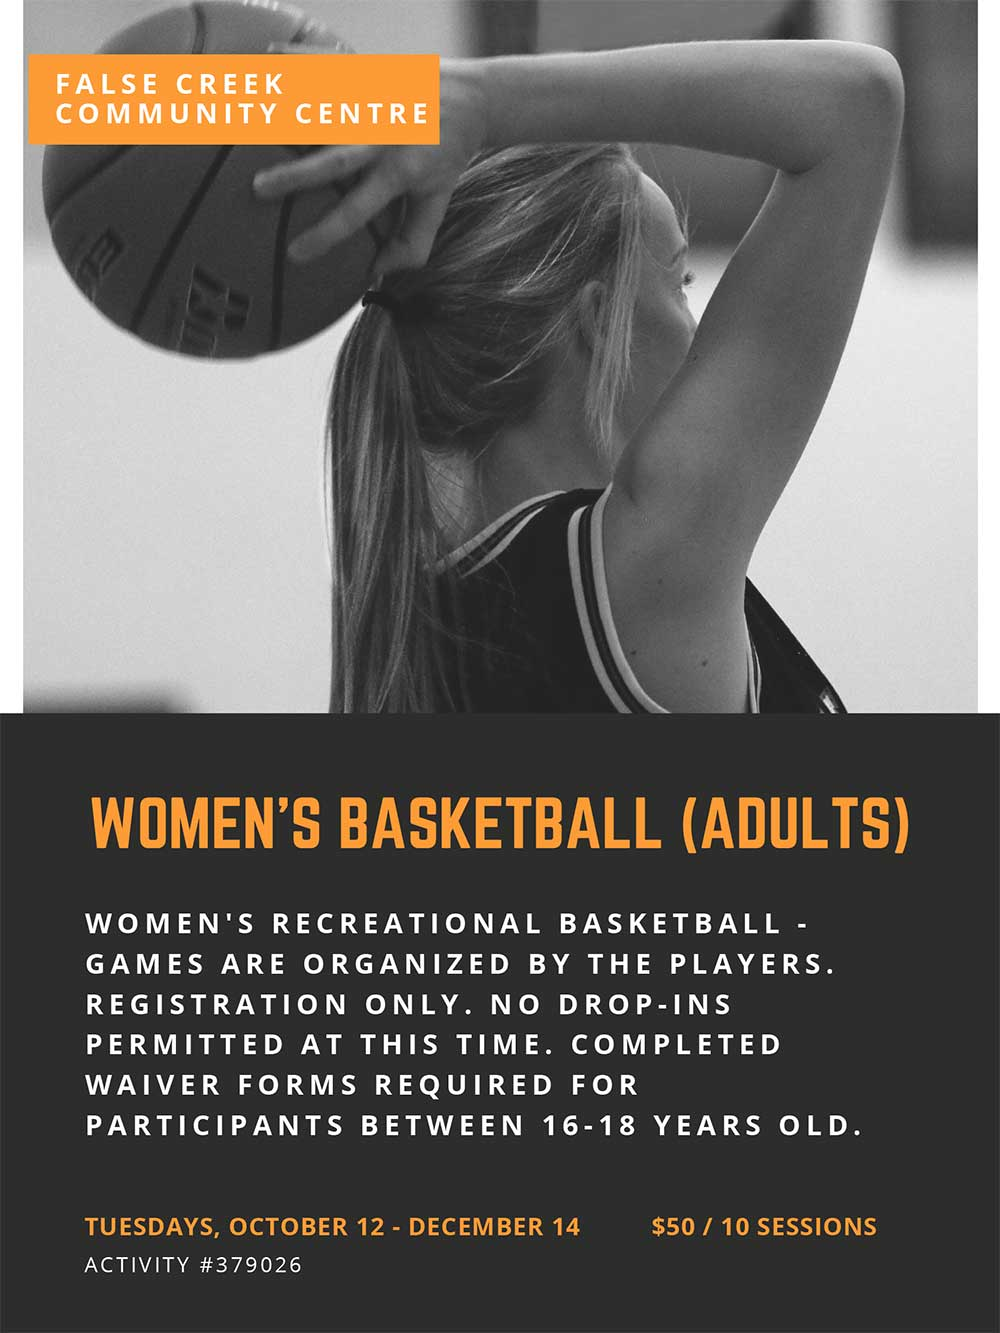 Women's recreational basketball - Games are organized by the players. Registration only. No drop-ins permitted at this time. Completed waiver forms required for participants between 16-18 years old. ACTIVITY #379026 TUESDAYS, OCTOBER 12 - DECEMBER 14 $50 / 10 SESSIONS